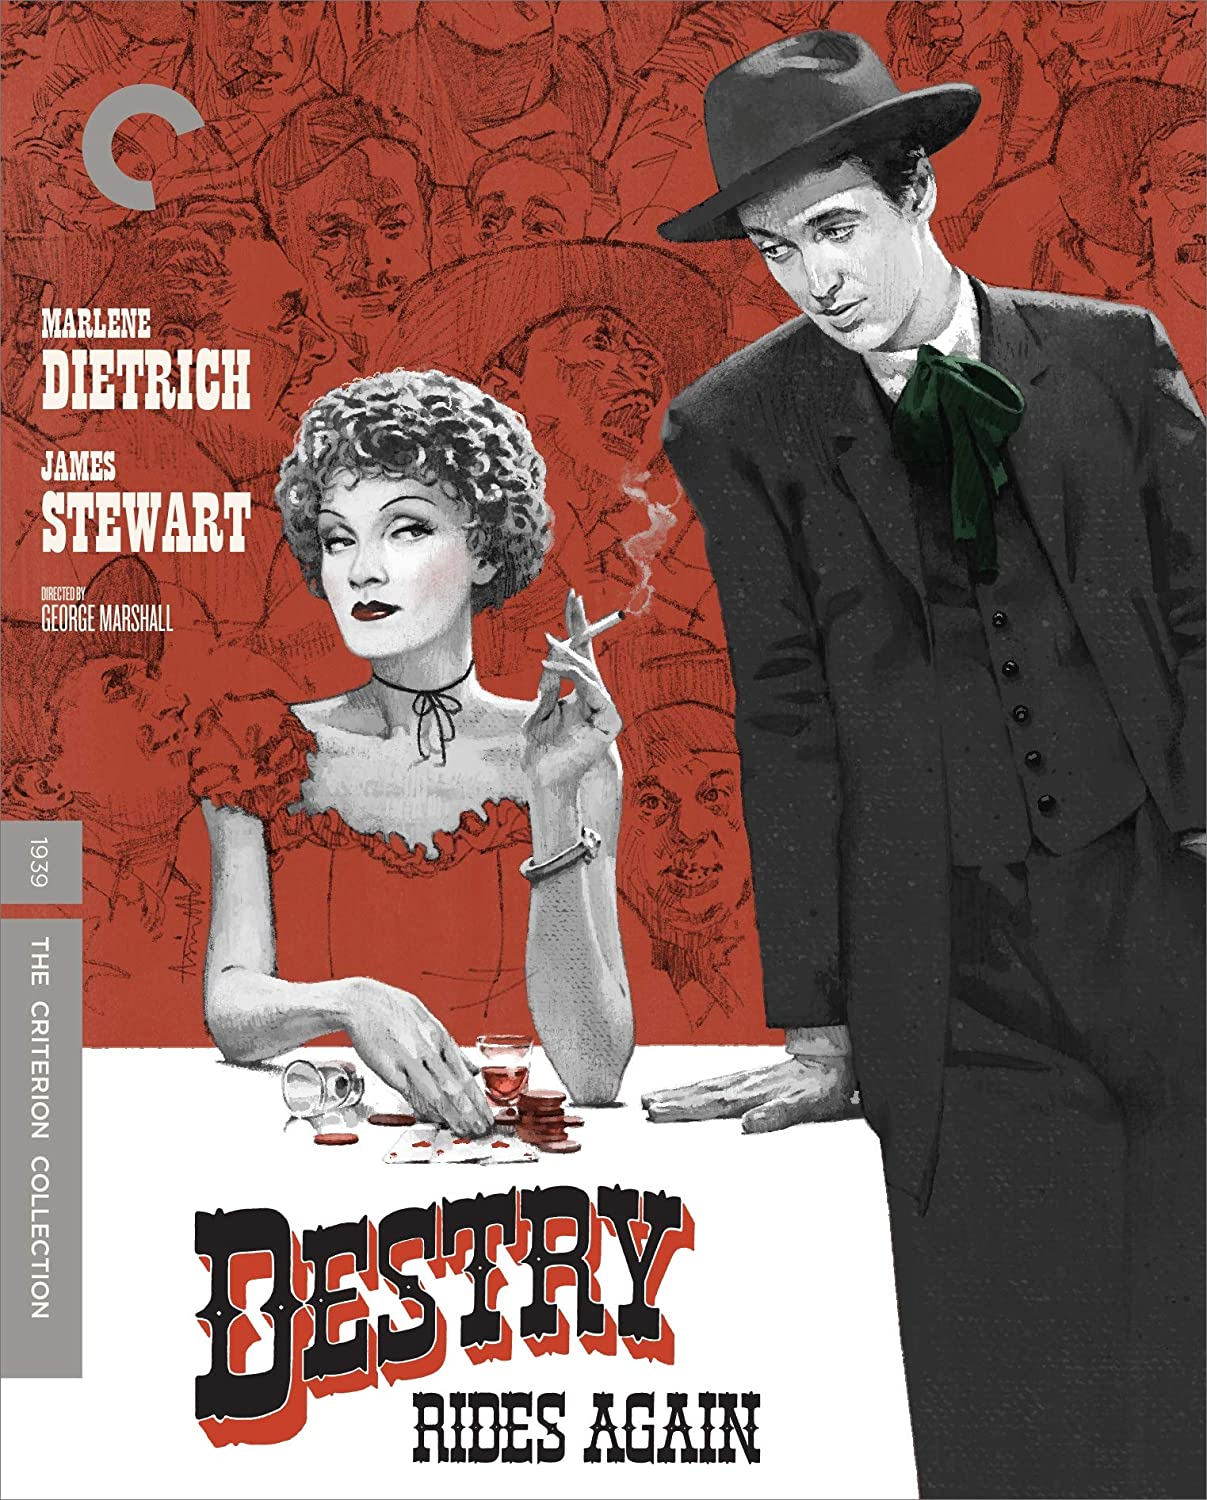 Destry Rides Again 1939 Criterion Collection UK Only 2020